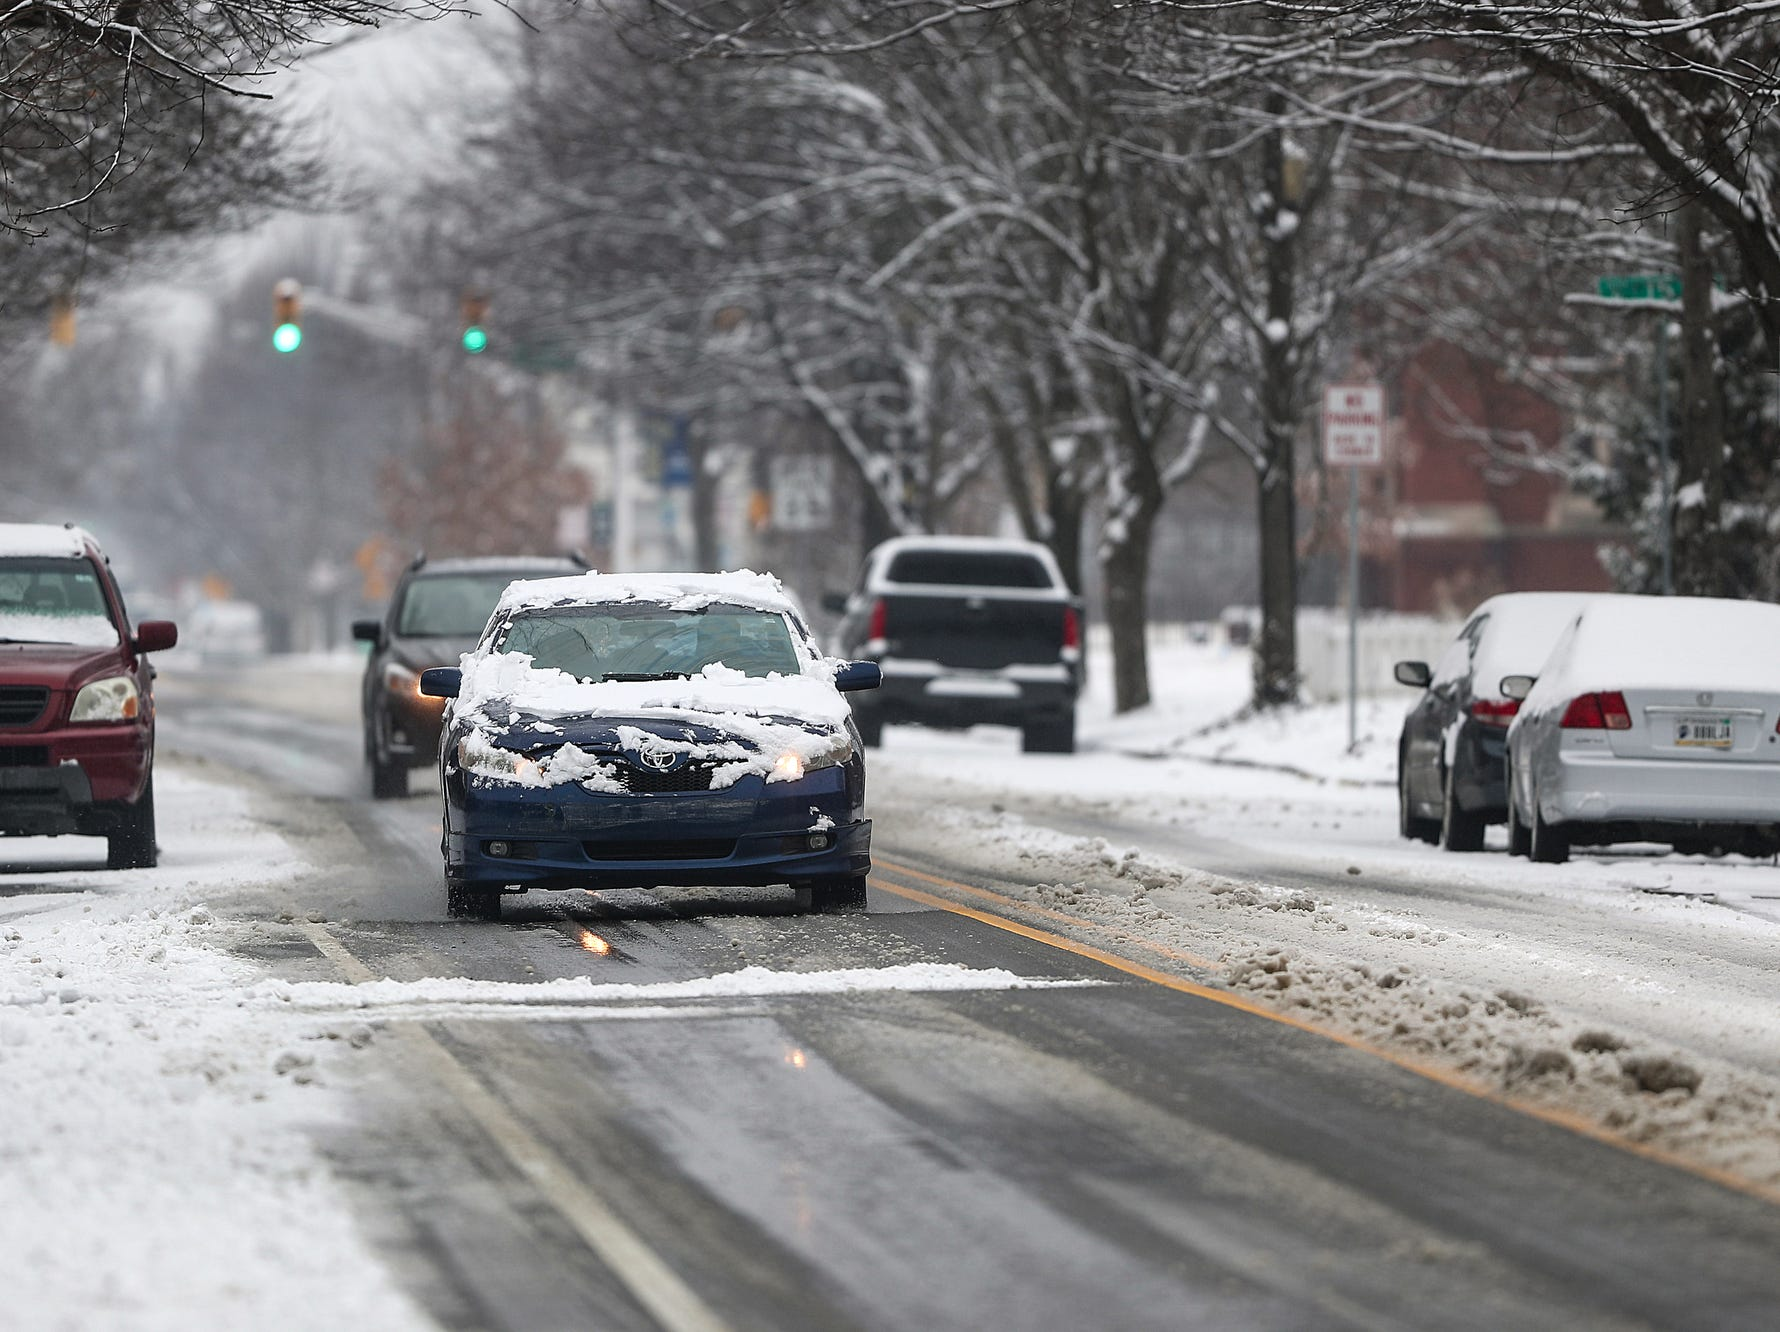 A stretch of Central Avenue is covered in wet snow, north of downtown Indianapolis on Sunday, Feb. 10, 2019. According to the National Weather Service, heavy rain Monday into Tuesday might worsen flooding in some areas already effected by last week's precipitation.